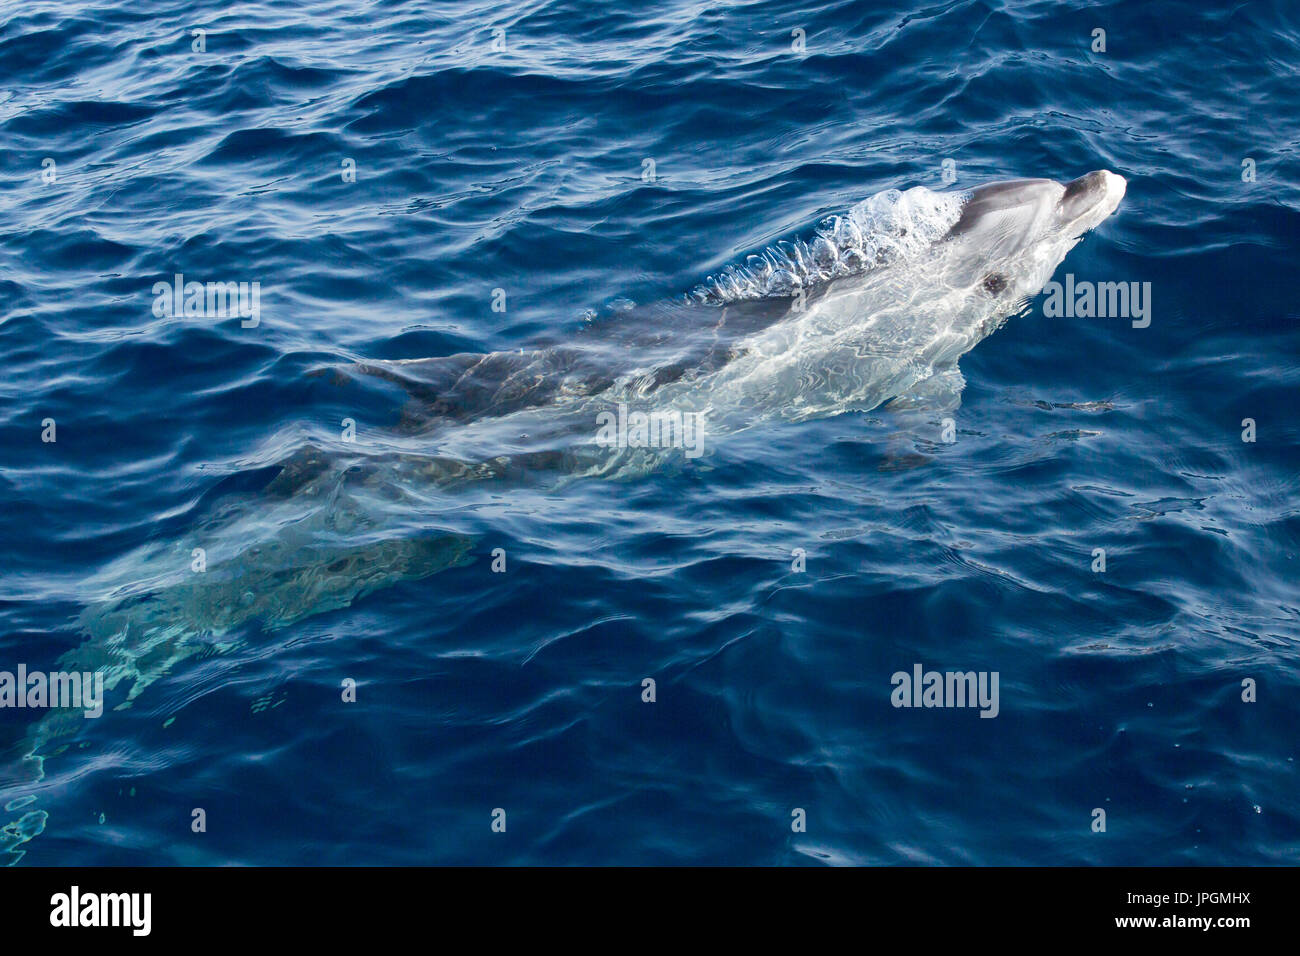 Common Bottlenose Dolphin (Tursiops truncates) blowing bubbles while surfacing to breathe in the Strait of Gibraltar - Stock Image